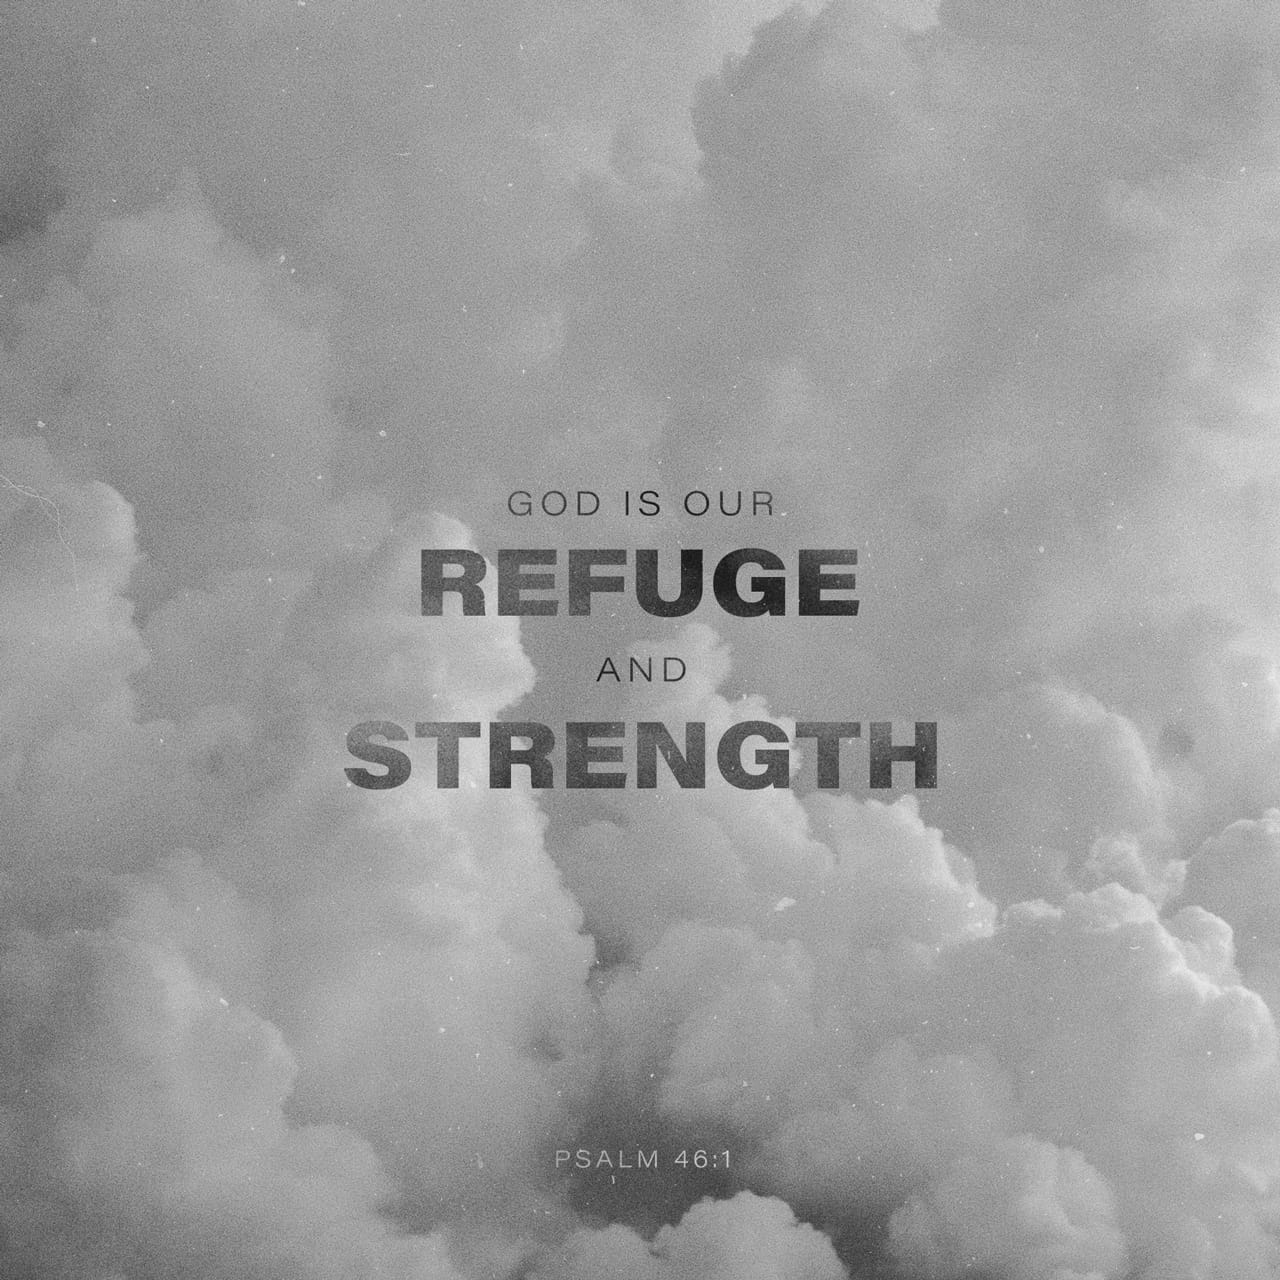 Psalms 46:1 God is our refuge and strength, a very present help in trouble. | King James Version (KJV)